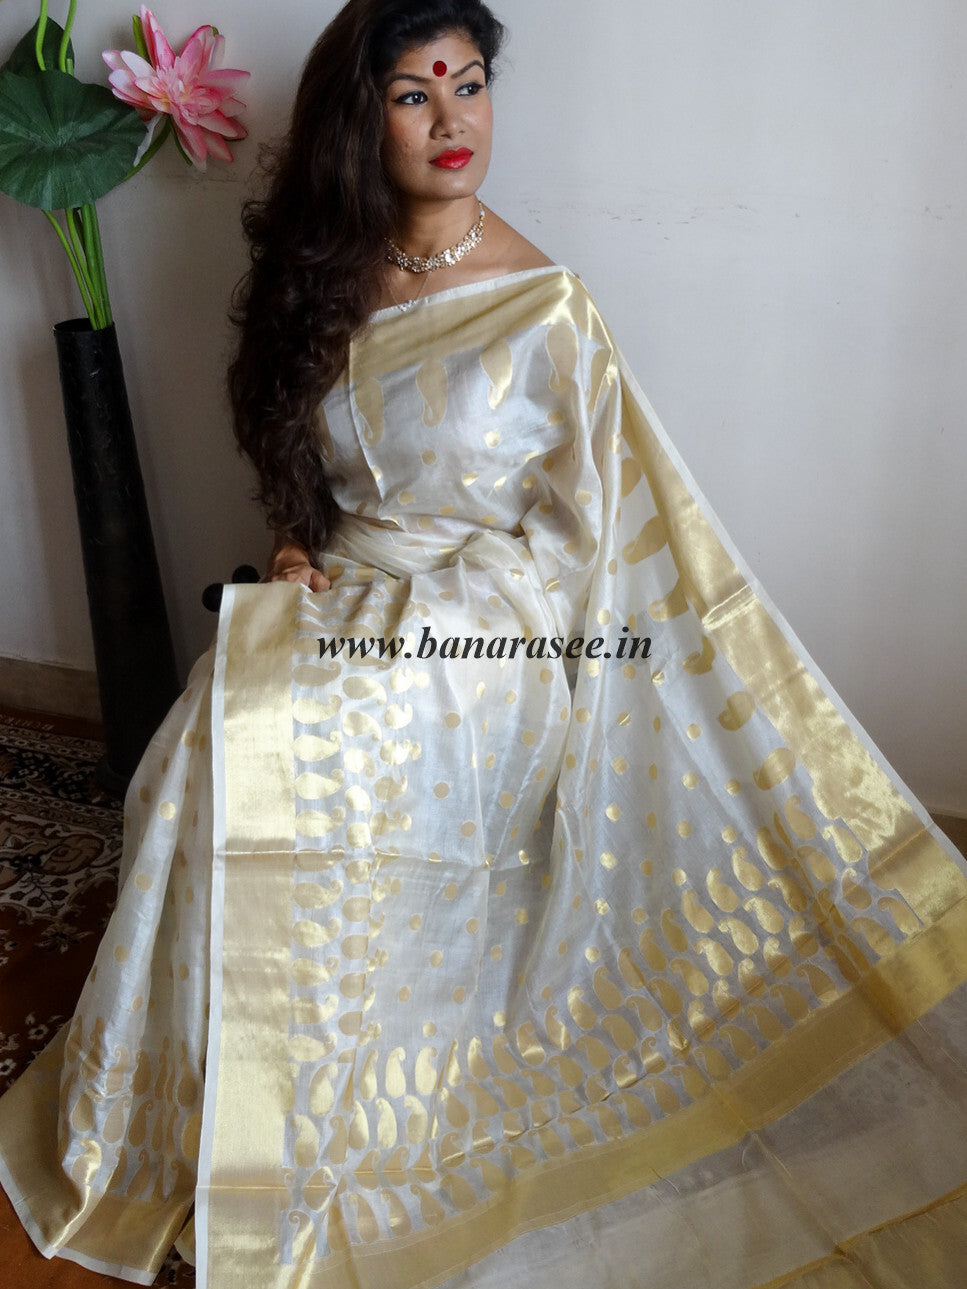 Banarasee/Banarasi Handwoven Pure Tussar Silk Sari With Gold Zari Paisley & Polka Dot-Off White